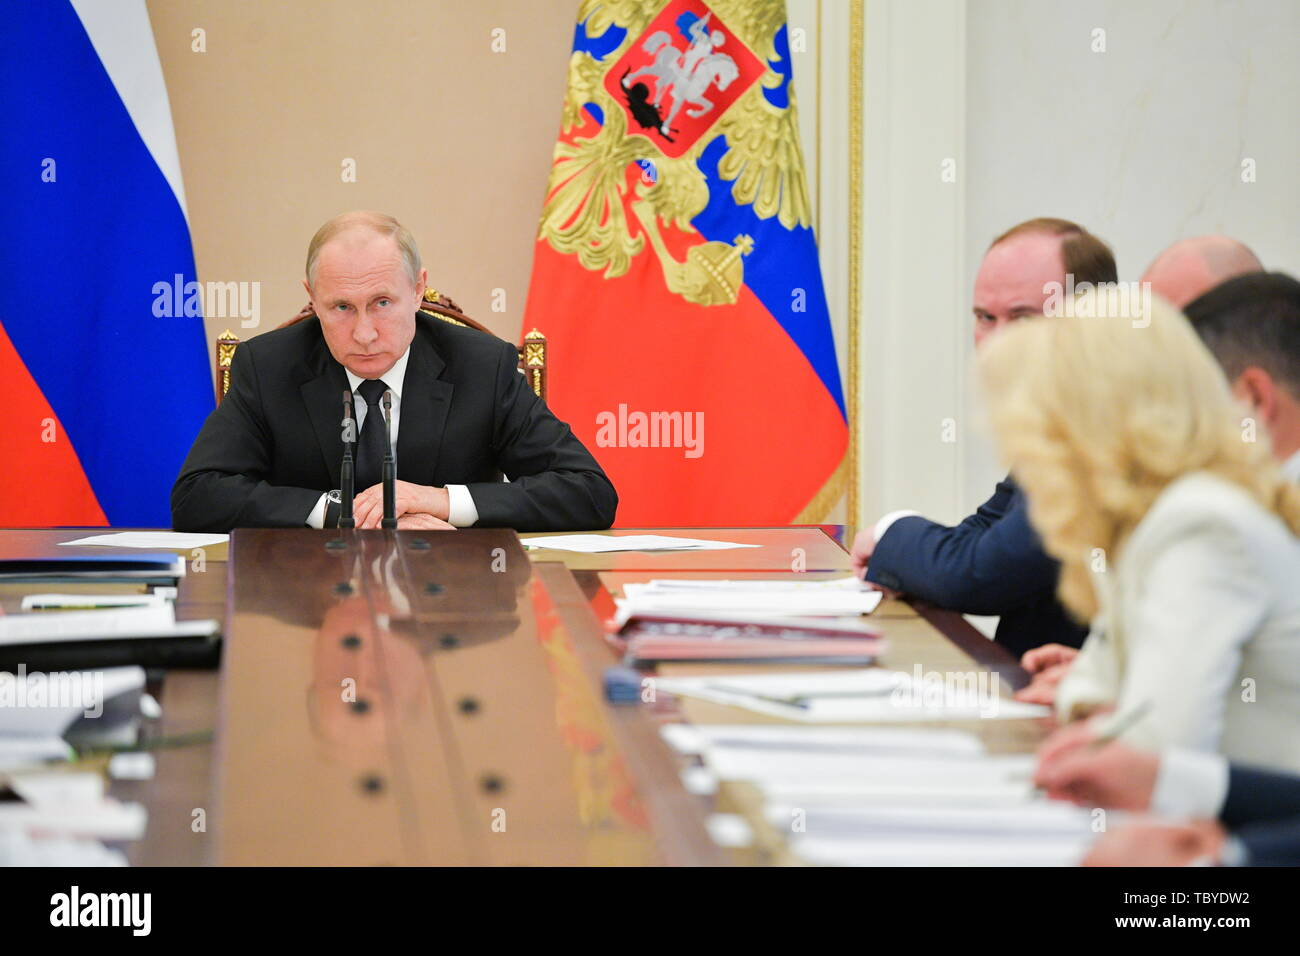 Moscow, Russia. 04th June, 2019. MOSCOW, RUSSIA - JUNE 4, 2019: Russia's President Vladimir Putin (L) chairs a Russian government meeting at the Moscow Kremlin. Alexei Druzhinin/Russian Presidential Press and Information Office/TASS Credit: ITAR-TASS News Agency/Alamy Live News - Stock Image